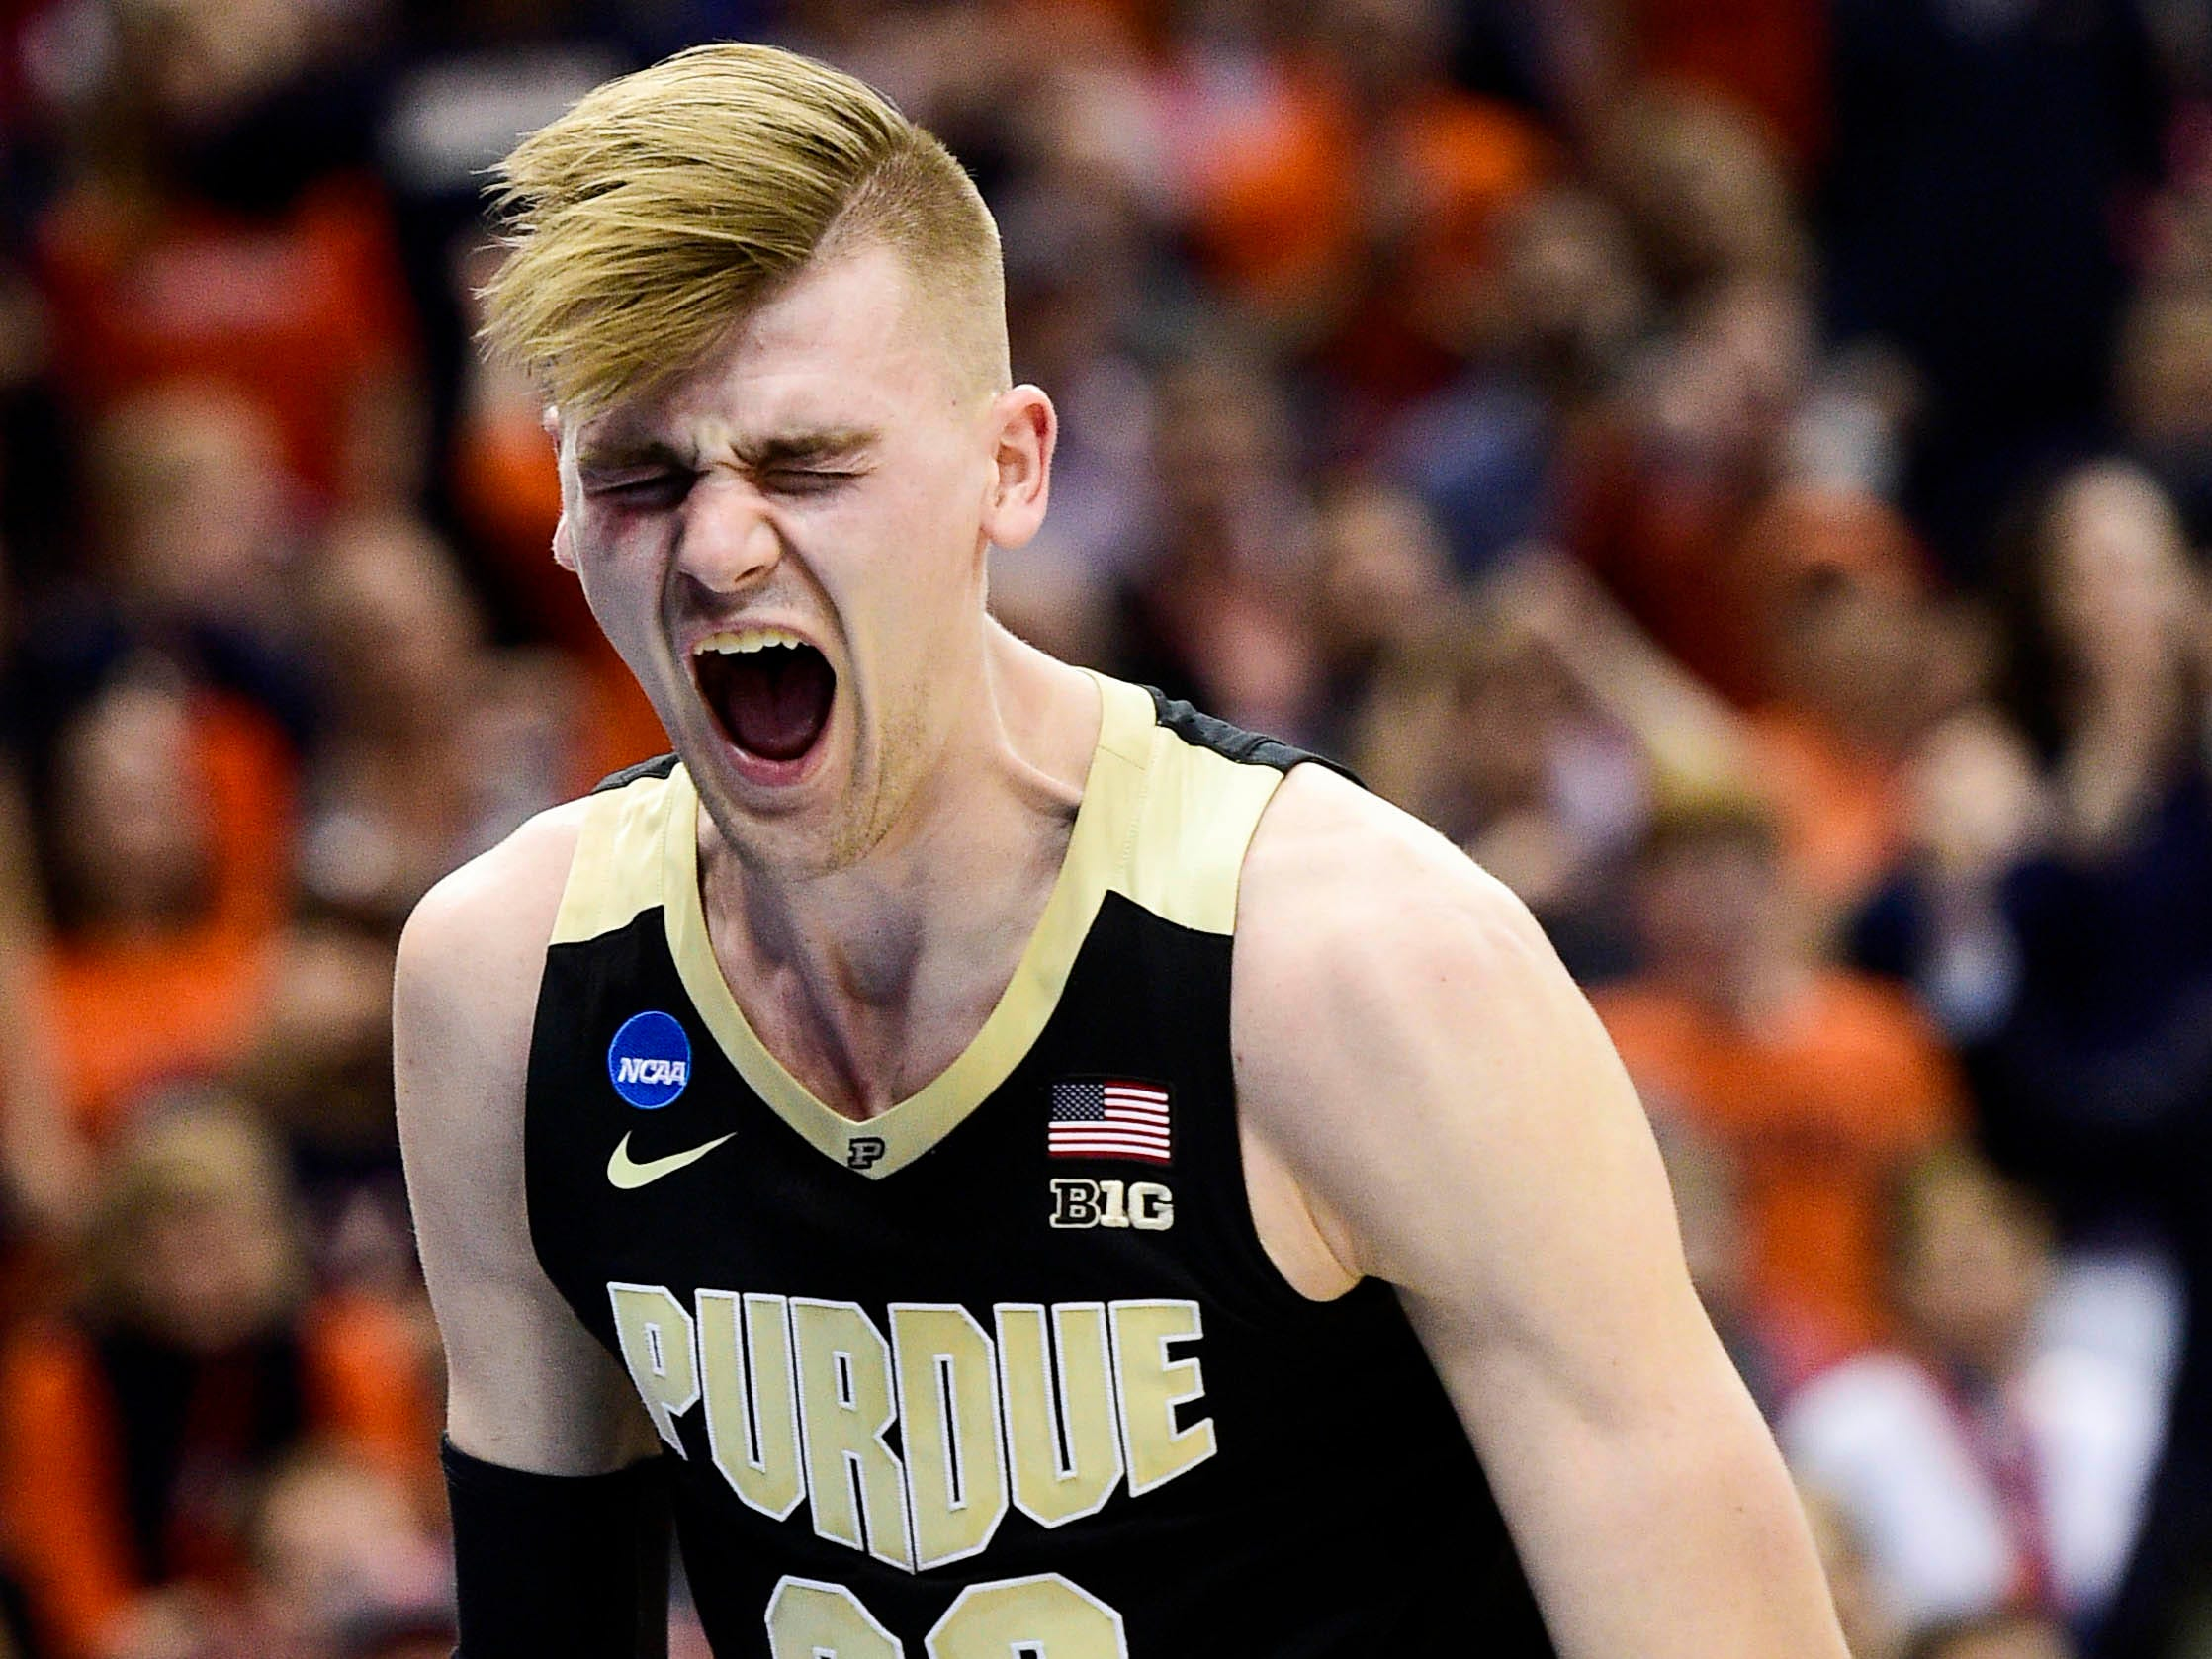 Mar 30, 2019; Louisville, KY, United States; Purdue Boilermakers center Matt Haarms (32) reacts during the first half in the championship game against the Virginia Cavaliers of the south regional of the 2019 NCAA Tournament at KFC Yum Center. Mandatory Credit: Thomas J. Russo-USA TODAY Sports